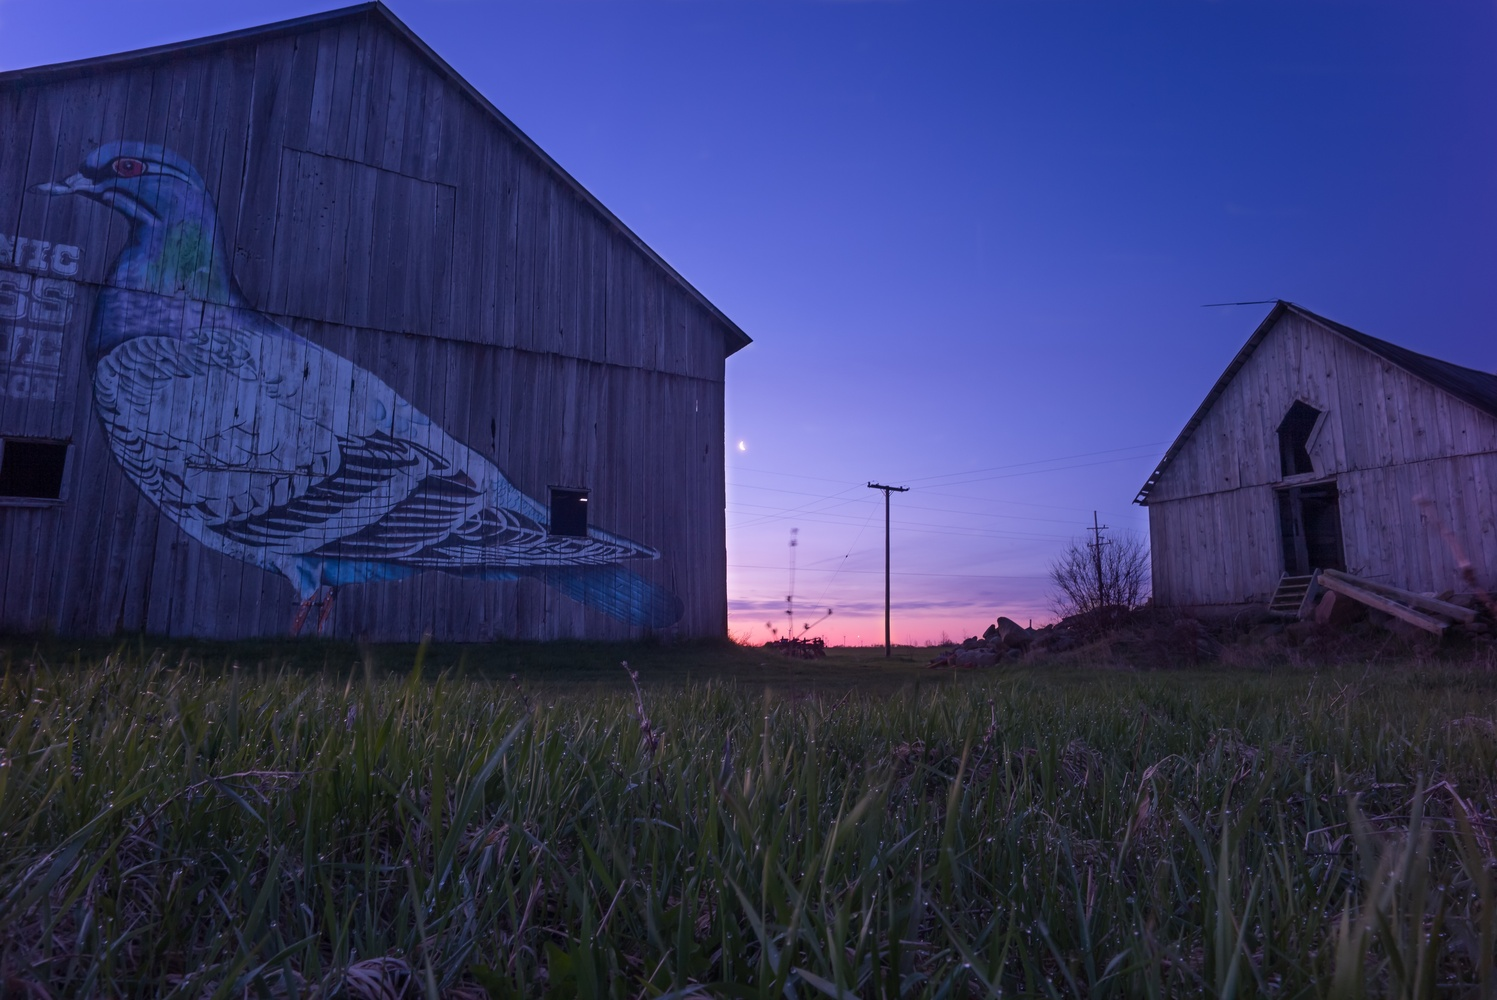 Barn art by Doc M